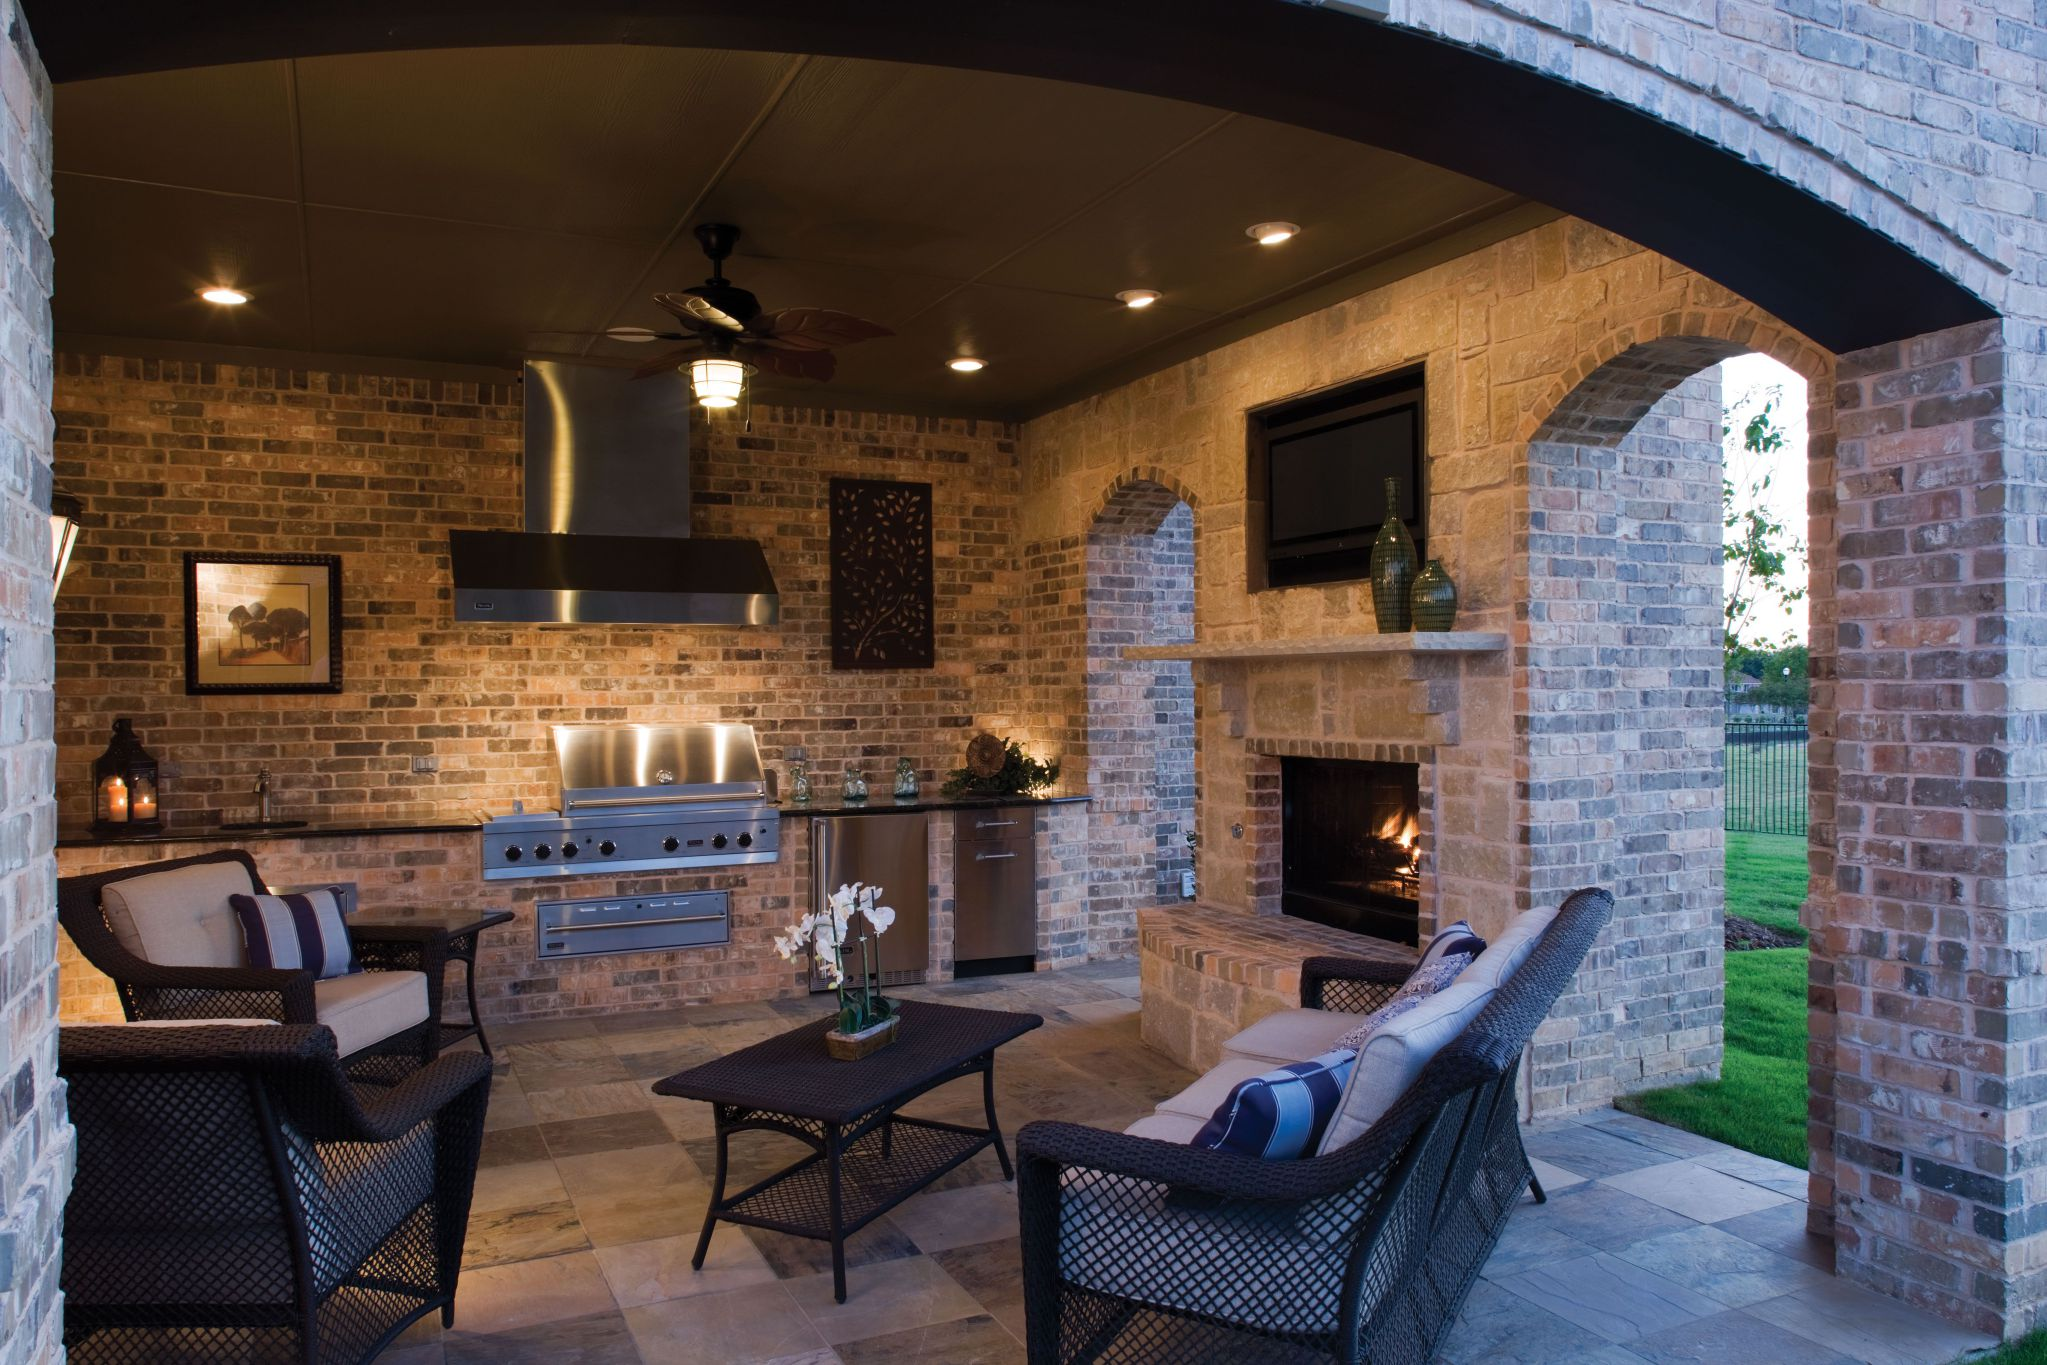 Grand Brick Wall Decor also Manufactre Fireplace For Rustic Living Room